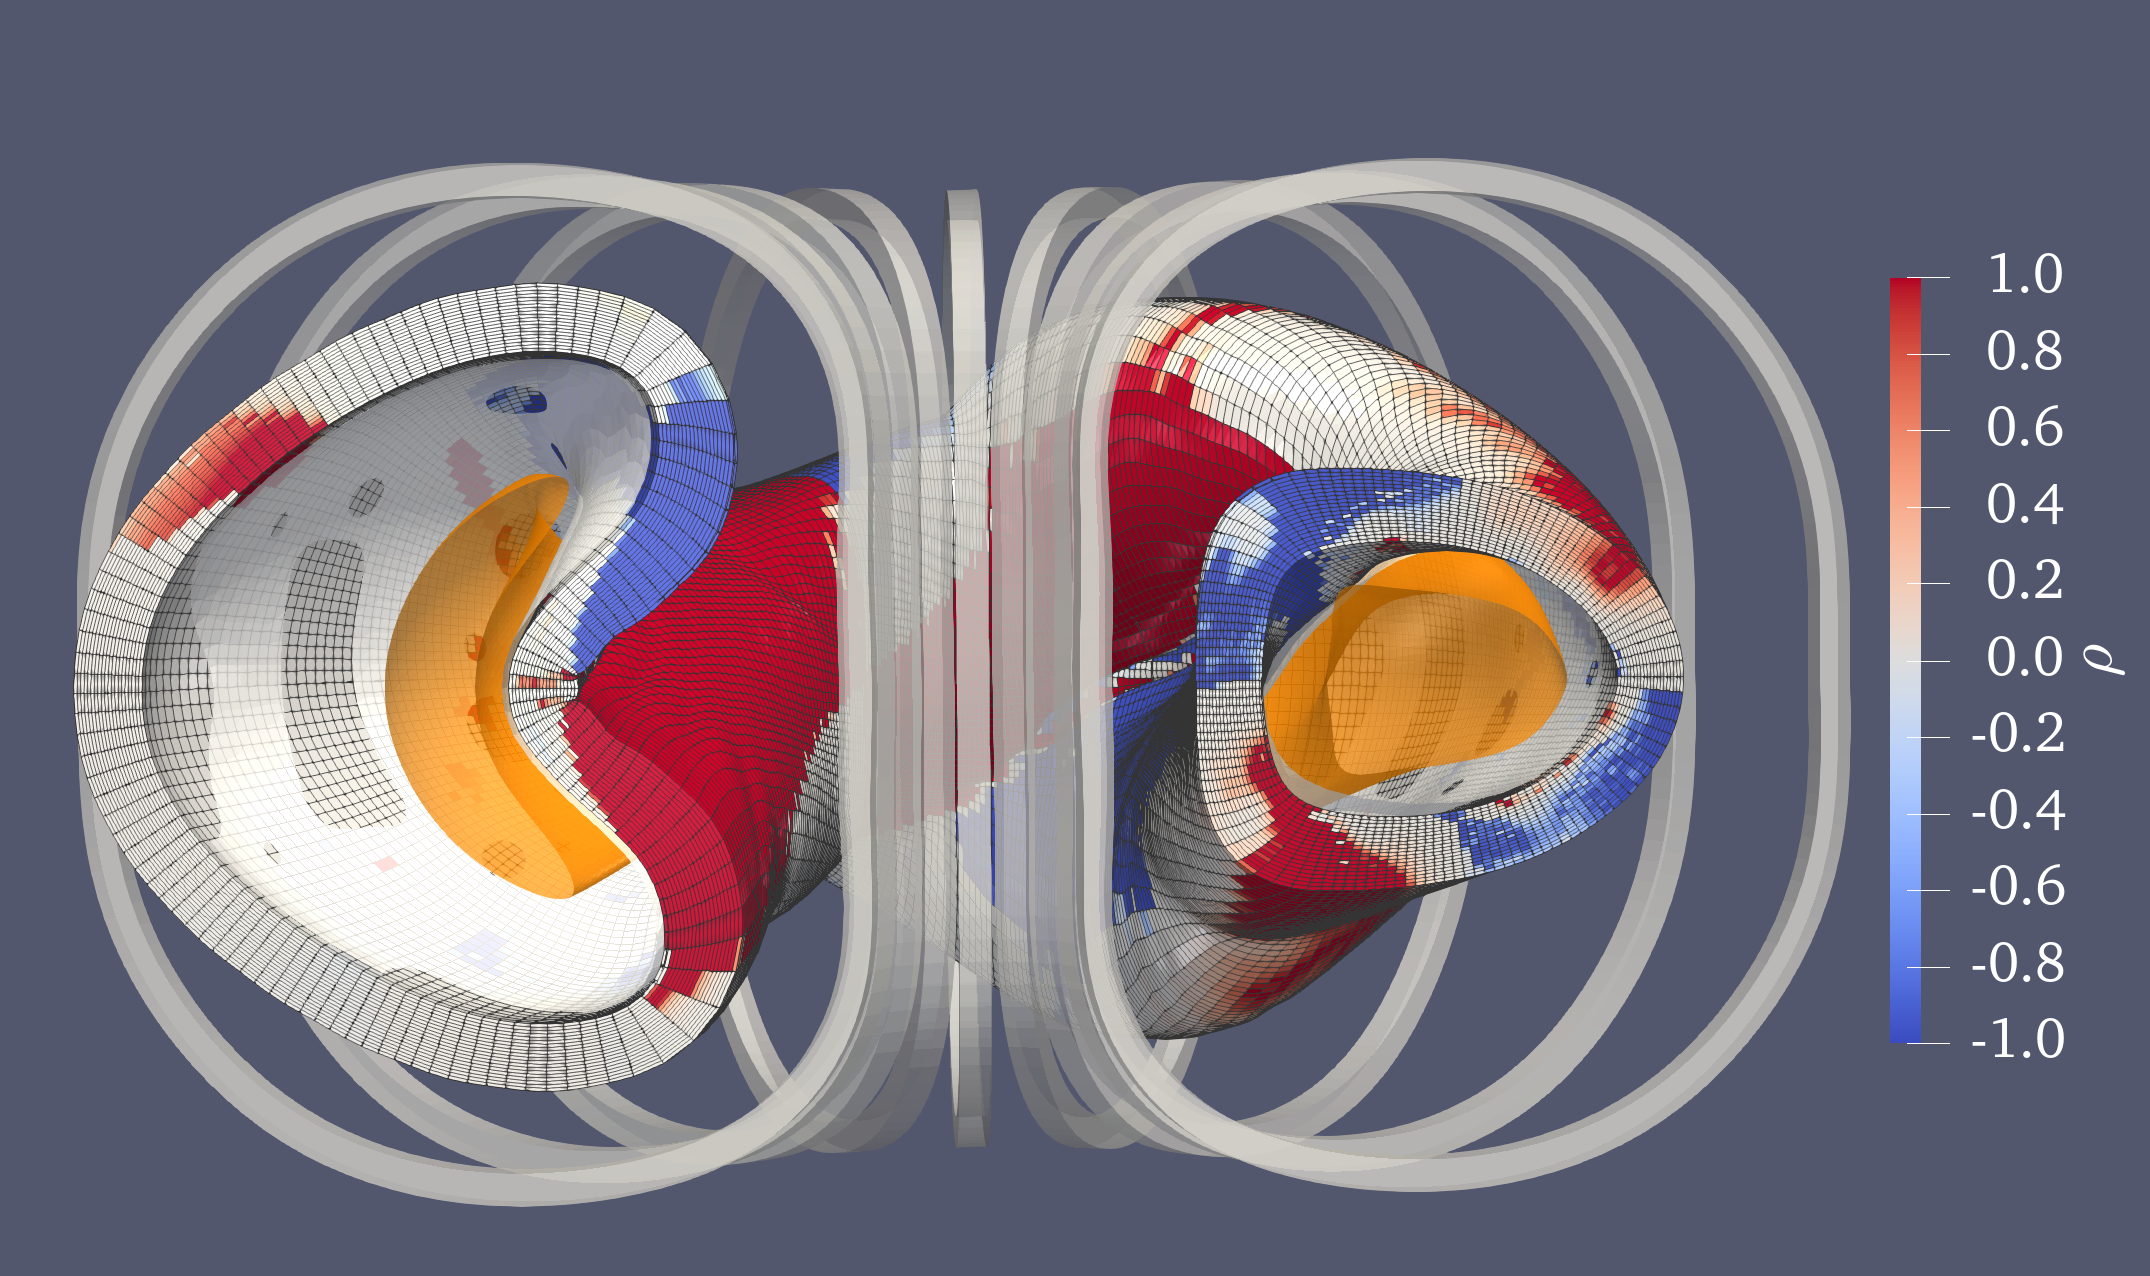 The half-Tesla NCSX design using permanent magnets together with planar TF coils. The magnets are perpendicular to the vacuum vessel and colors indicate the relative strength of the magnets.